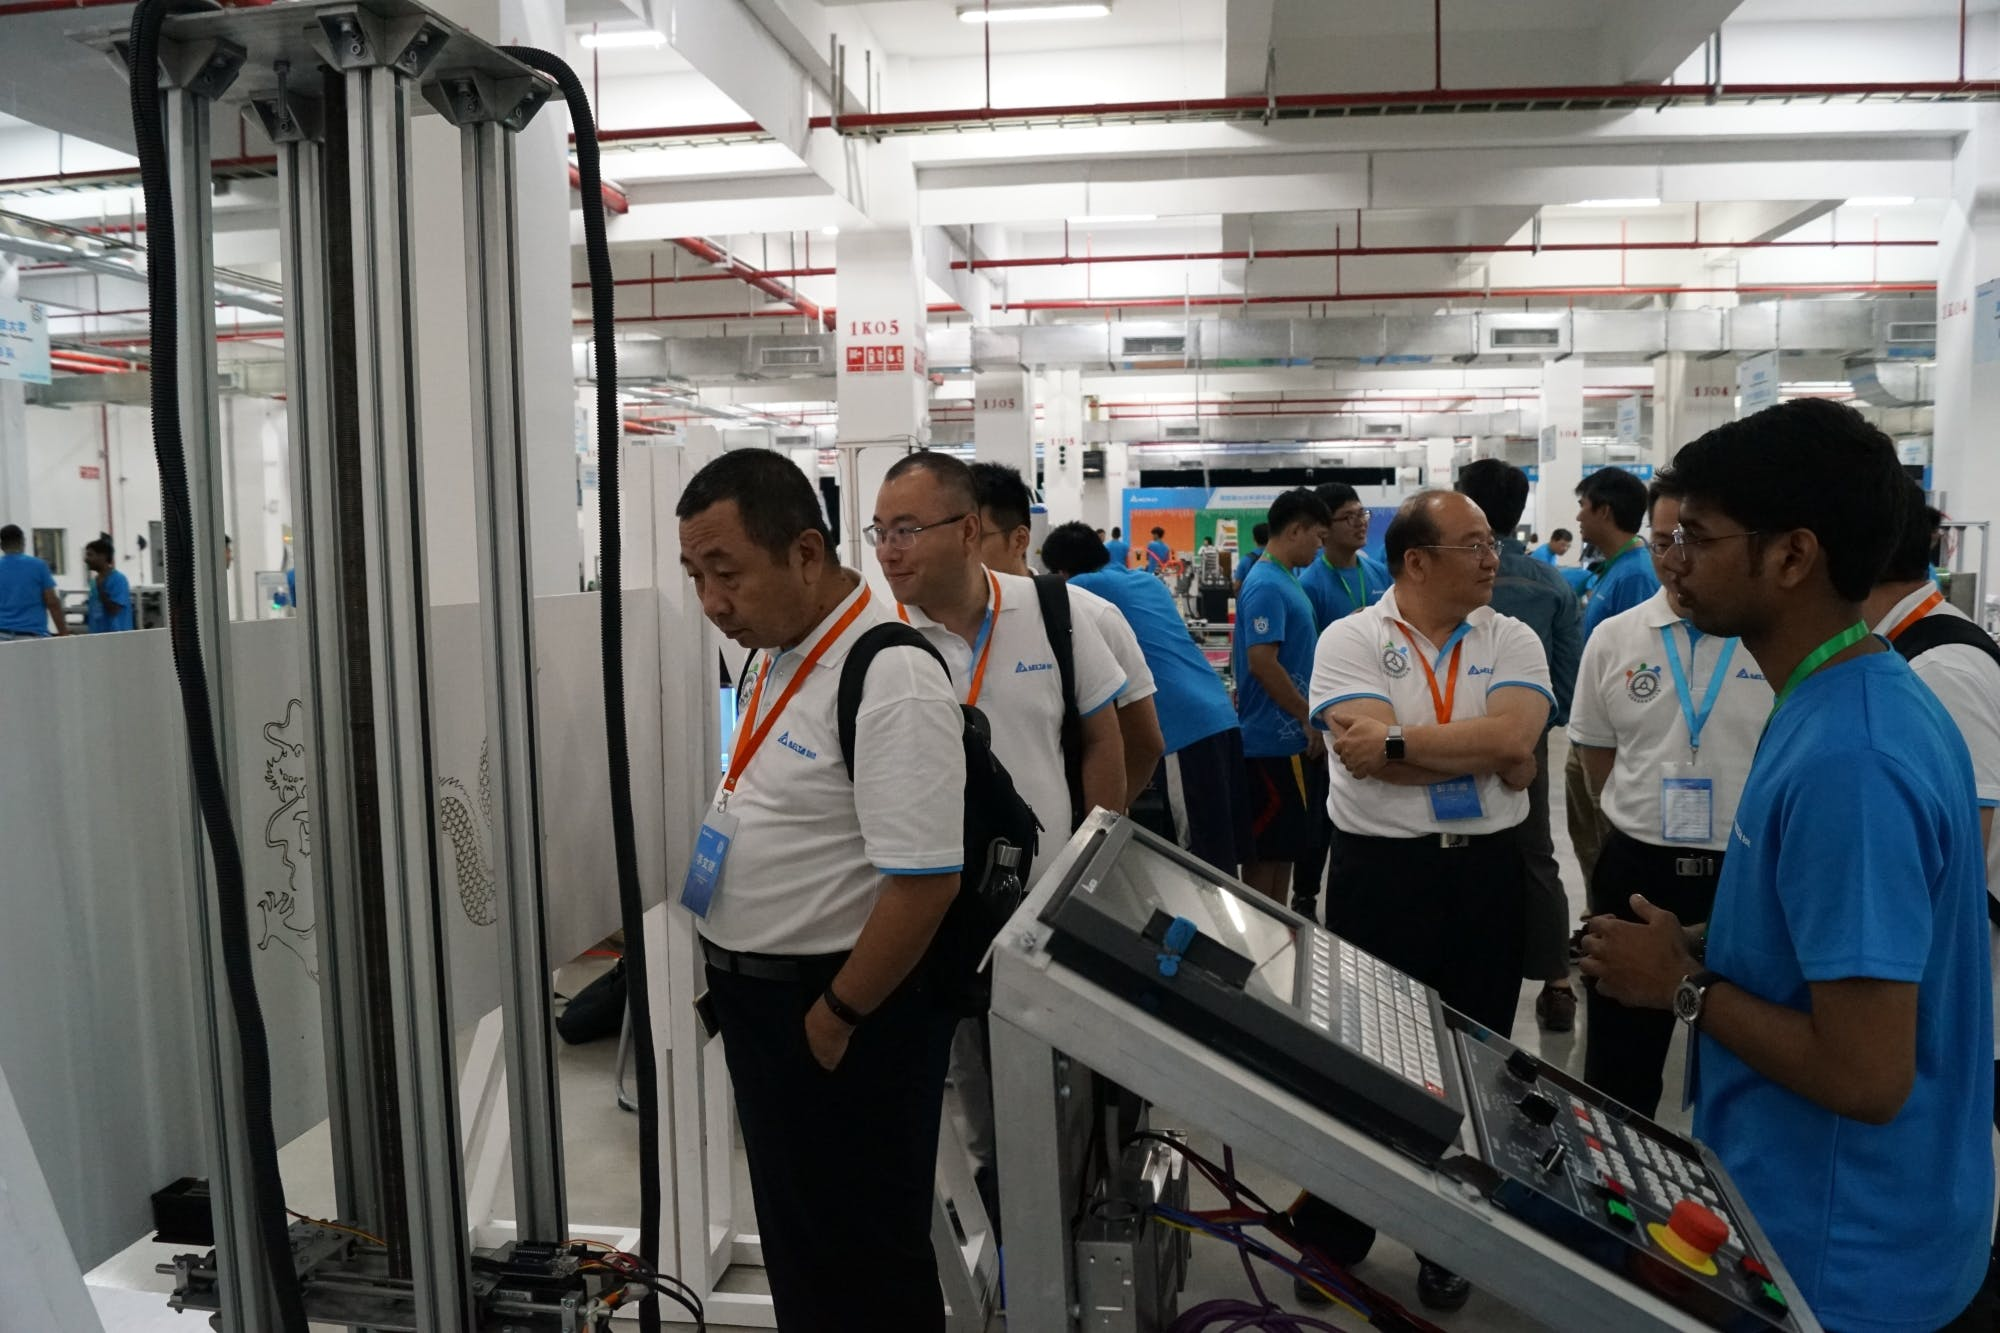 Judges observing the Machine and Its Output